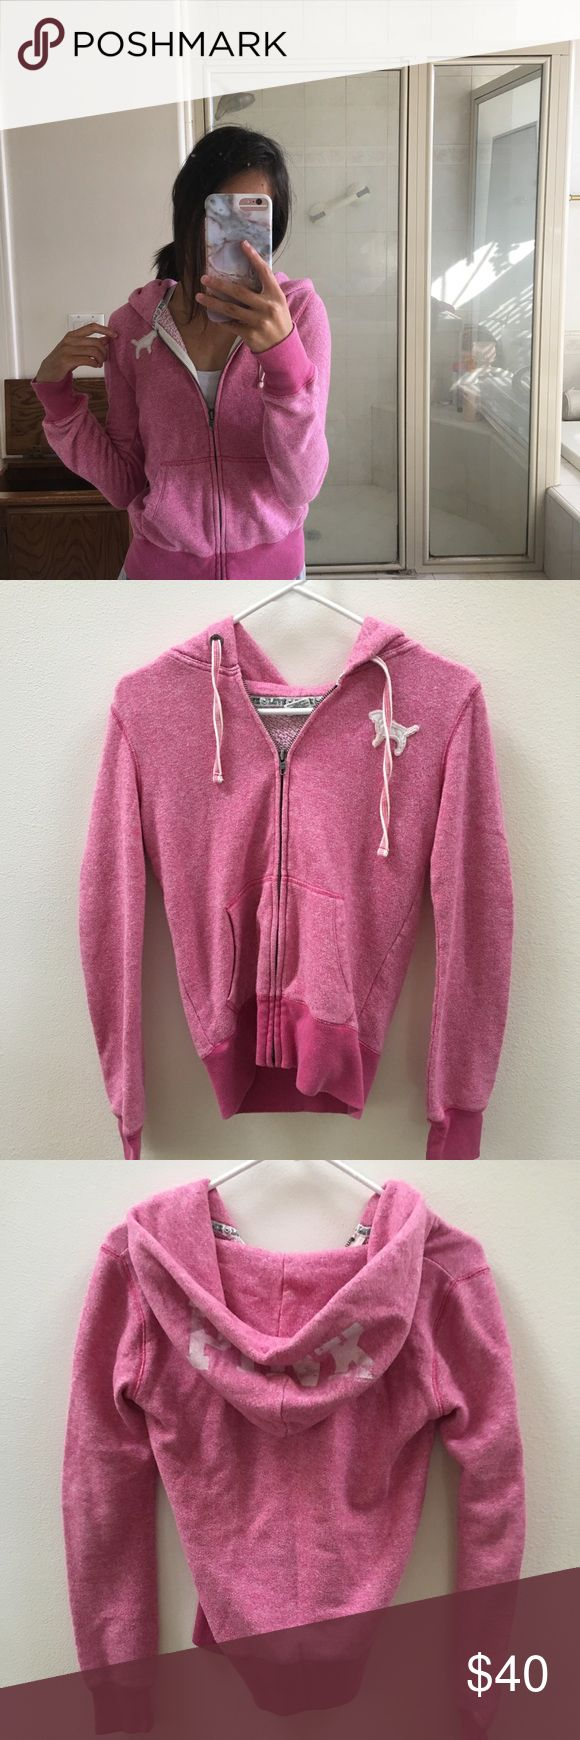 Victoria's Secret PINK Zip Up Hoodie Worn a couple times, pretty good condition! Size XS PINK zip up hoodie. Looks super cute with some denim shorts or jeans, or black leggings. PINK Victoria's Secret Tops Sweatshirts & Hoodies